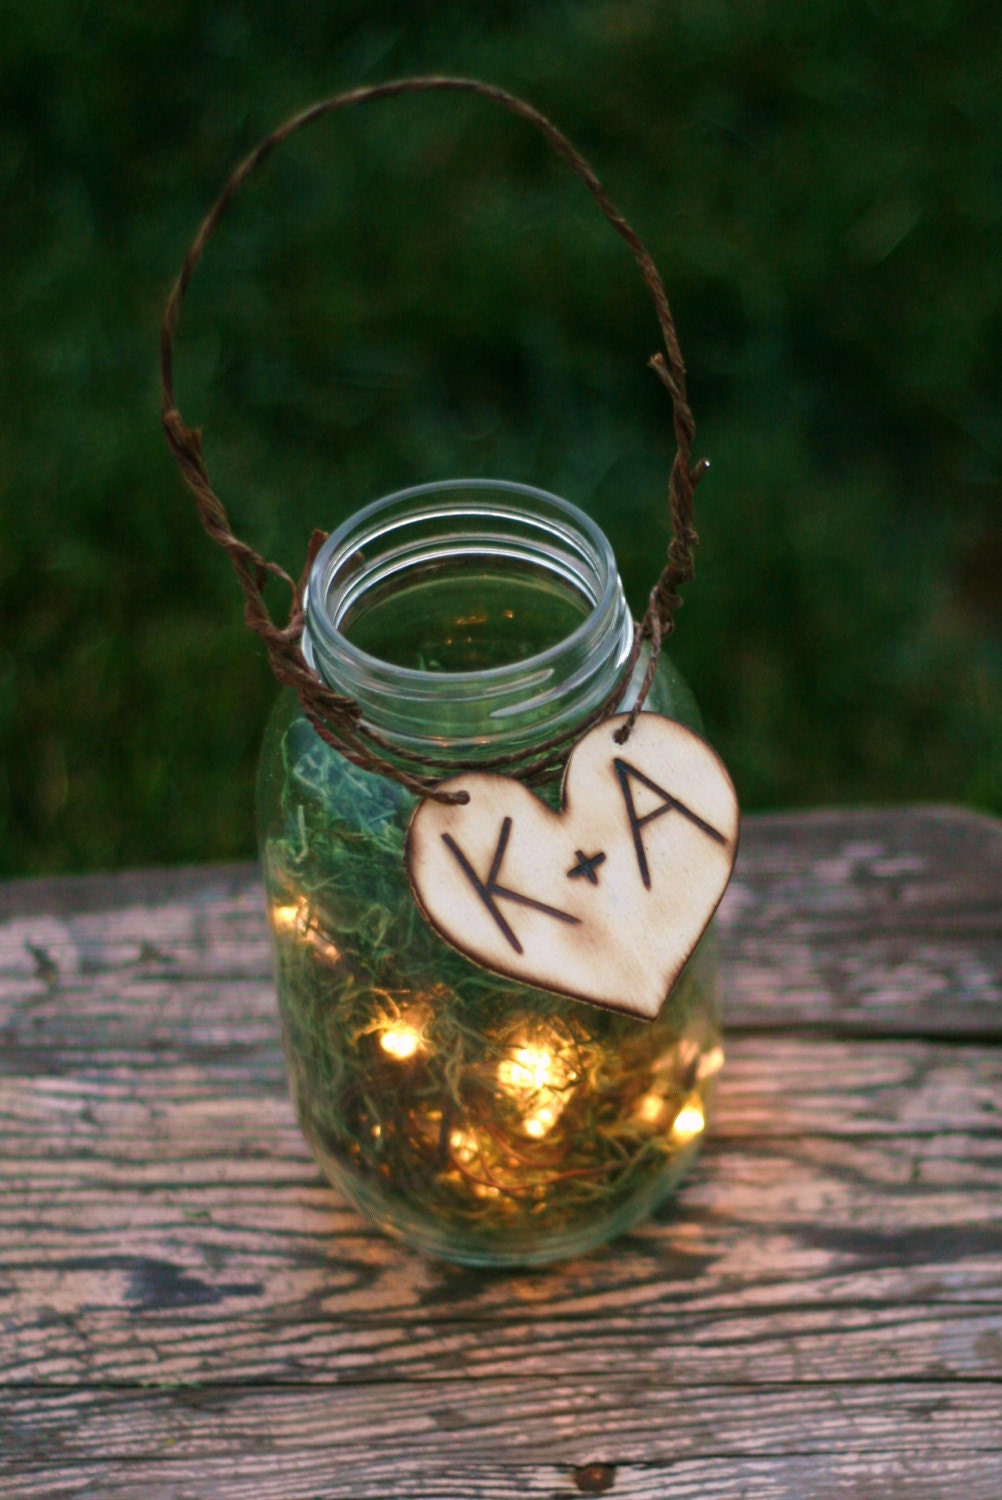 Upcycled Personalized Wood Glass Jar Outdoor Rustic Wedding Decoration Candles Firefly Lightning Bug Lanterns With Moss Woodland Forest Summer Fall CHIC